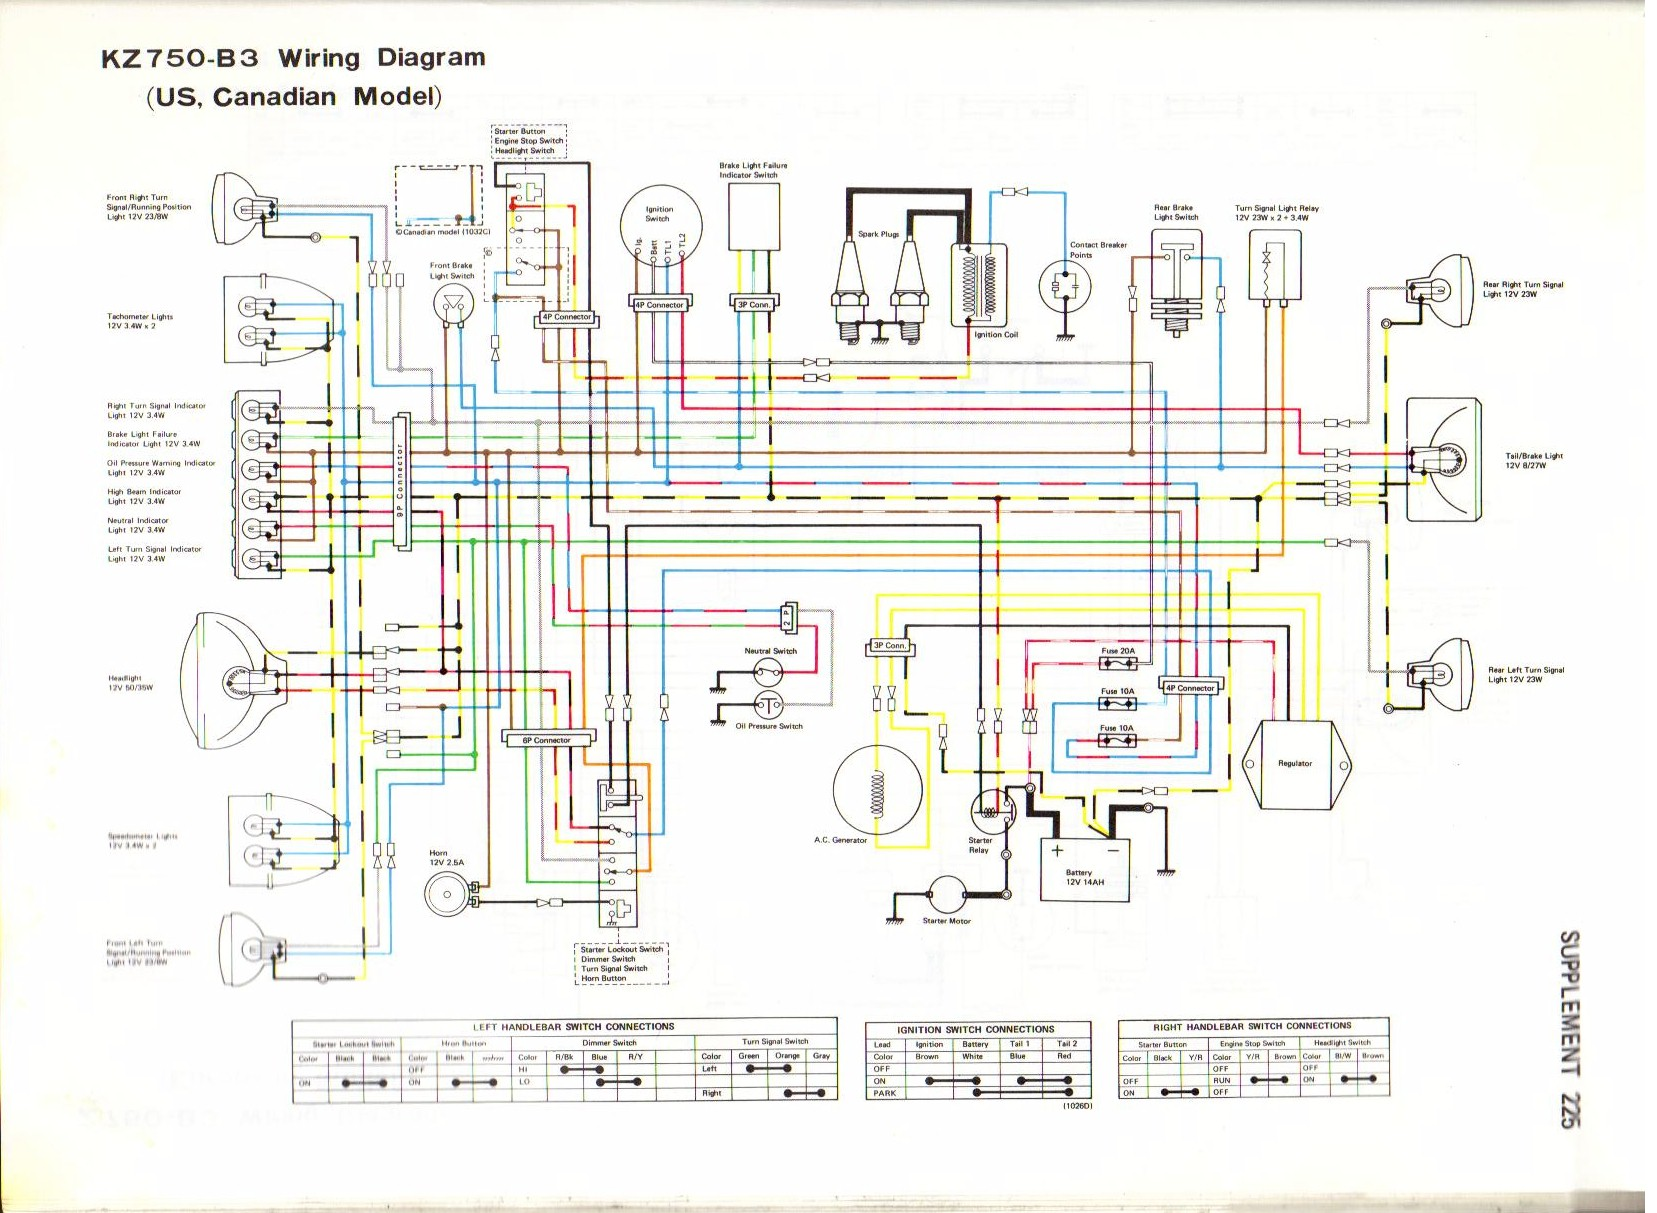 hight resolution of 77 kz1000 alternator wiring diagram wiring diagram show 77 kz750 wiring diagram wiring diagram option 77